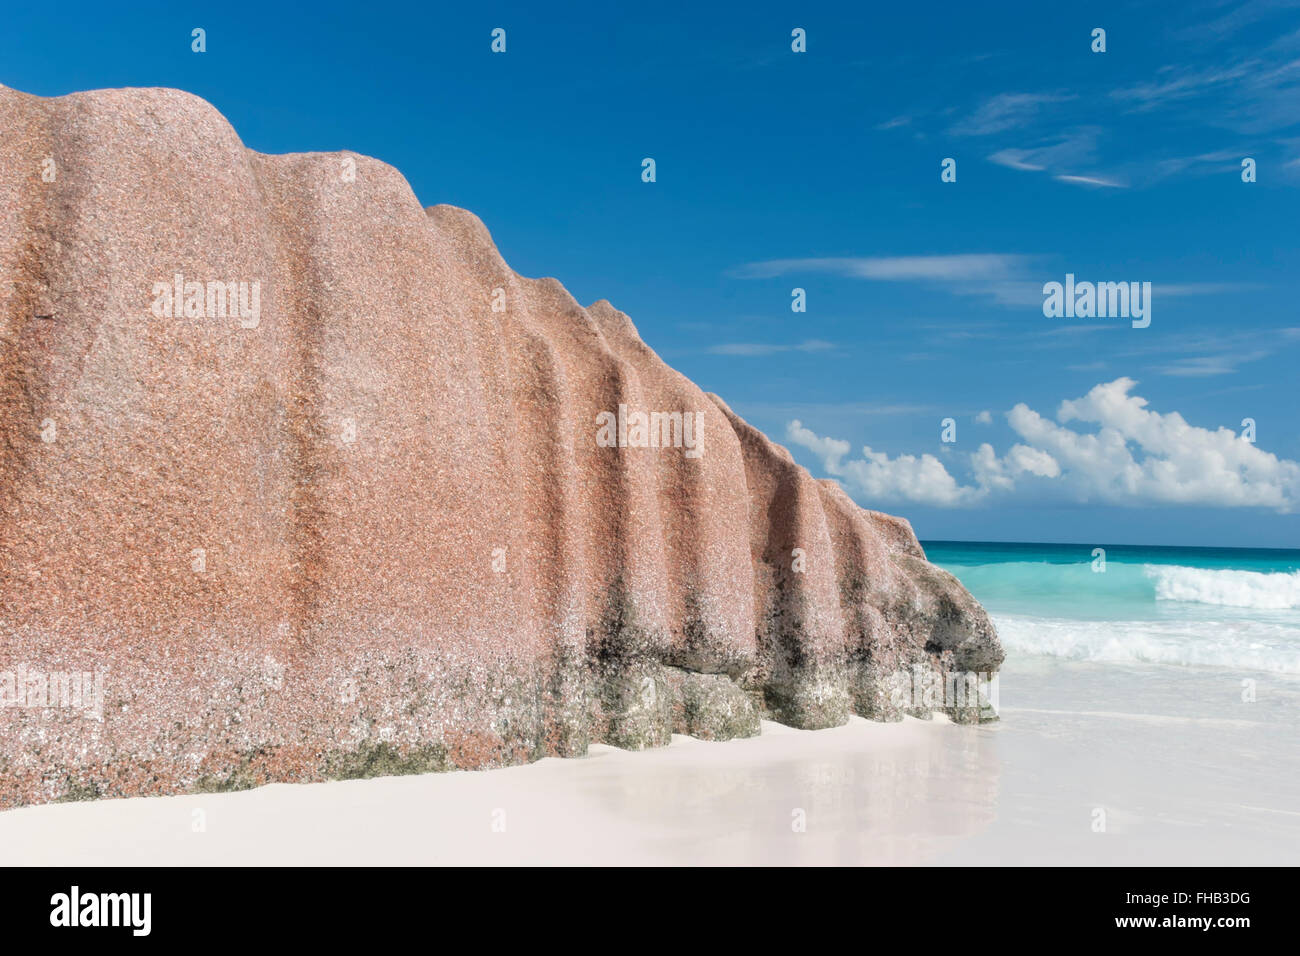 Large granite rock on tropical island white sand beach in Seychelles, Indian Ocean - Stock Image